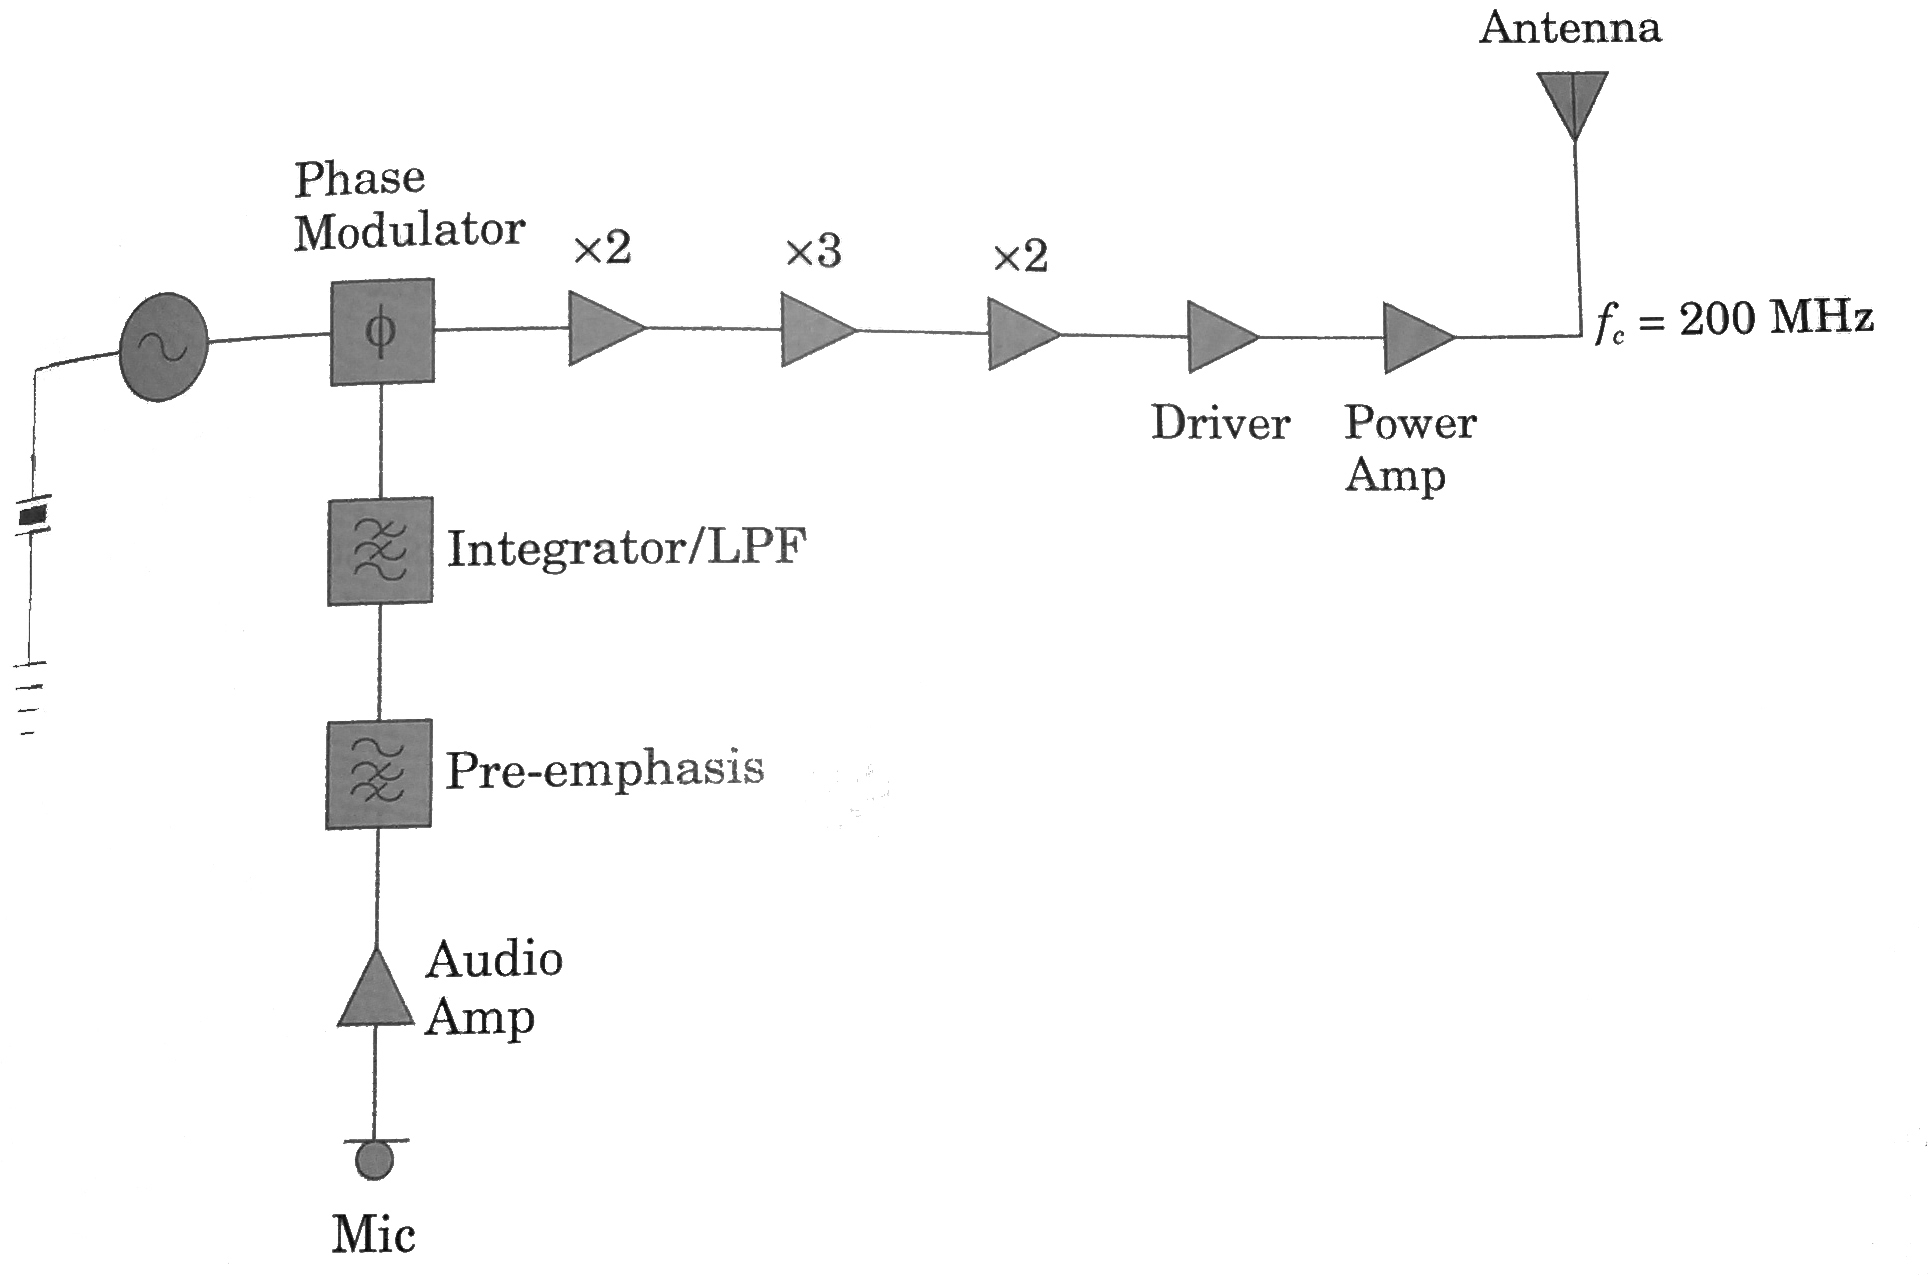 solved a block diagram for an fm transmitter using indire rh chegg com fm microwave radio transmitter block diagram fm transmitter block diagram tutorial